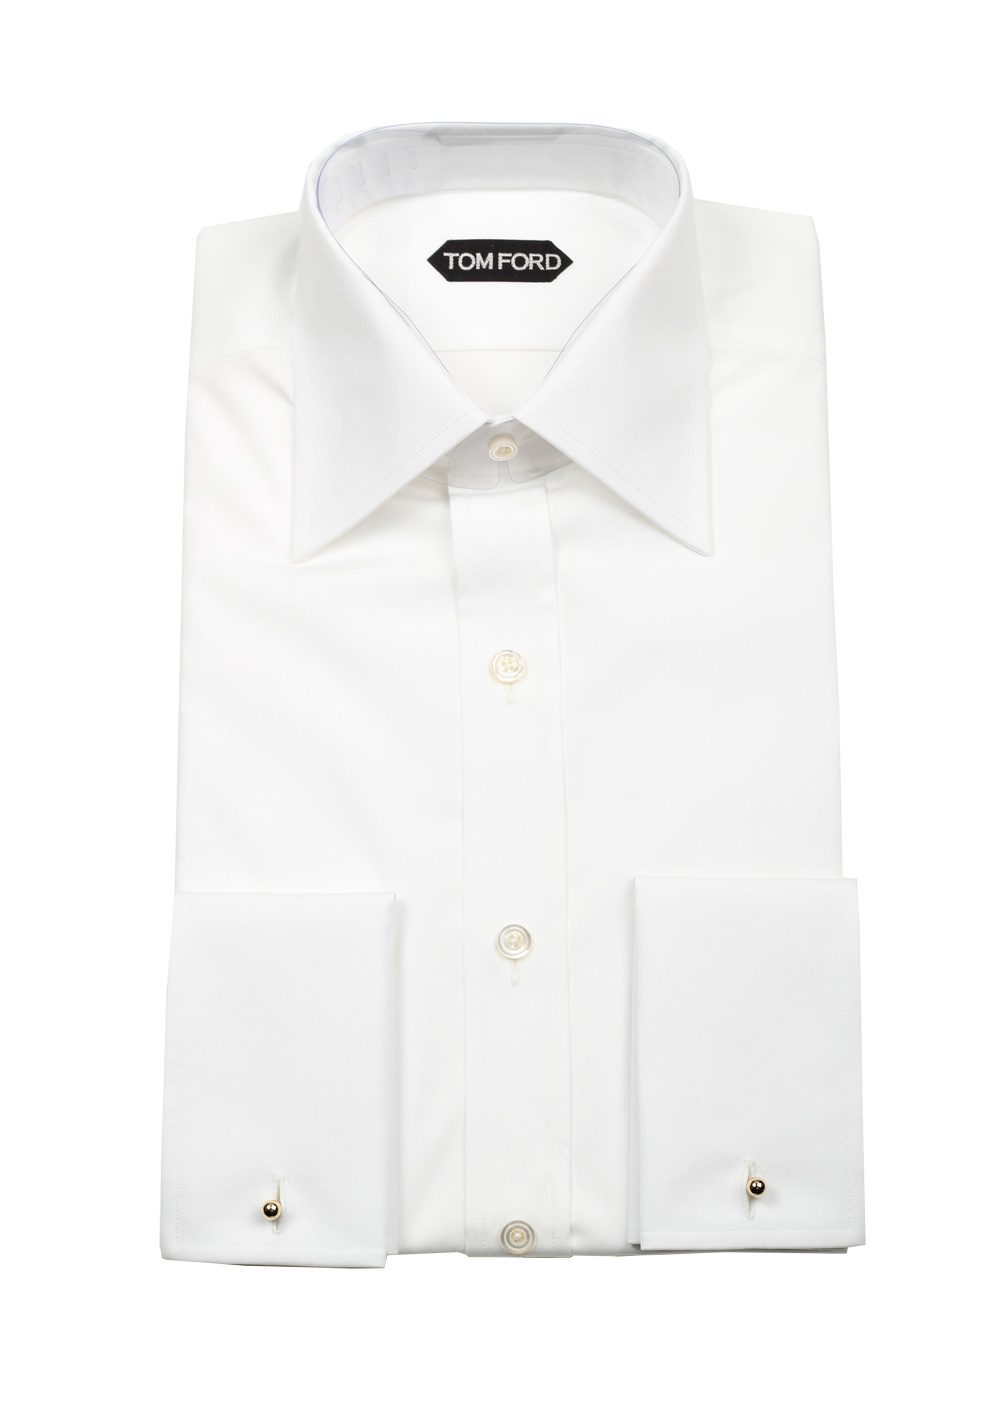 TOM FORD Solid White Signature Shirt With French Cuffs | Costume Limité